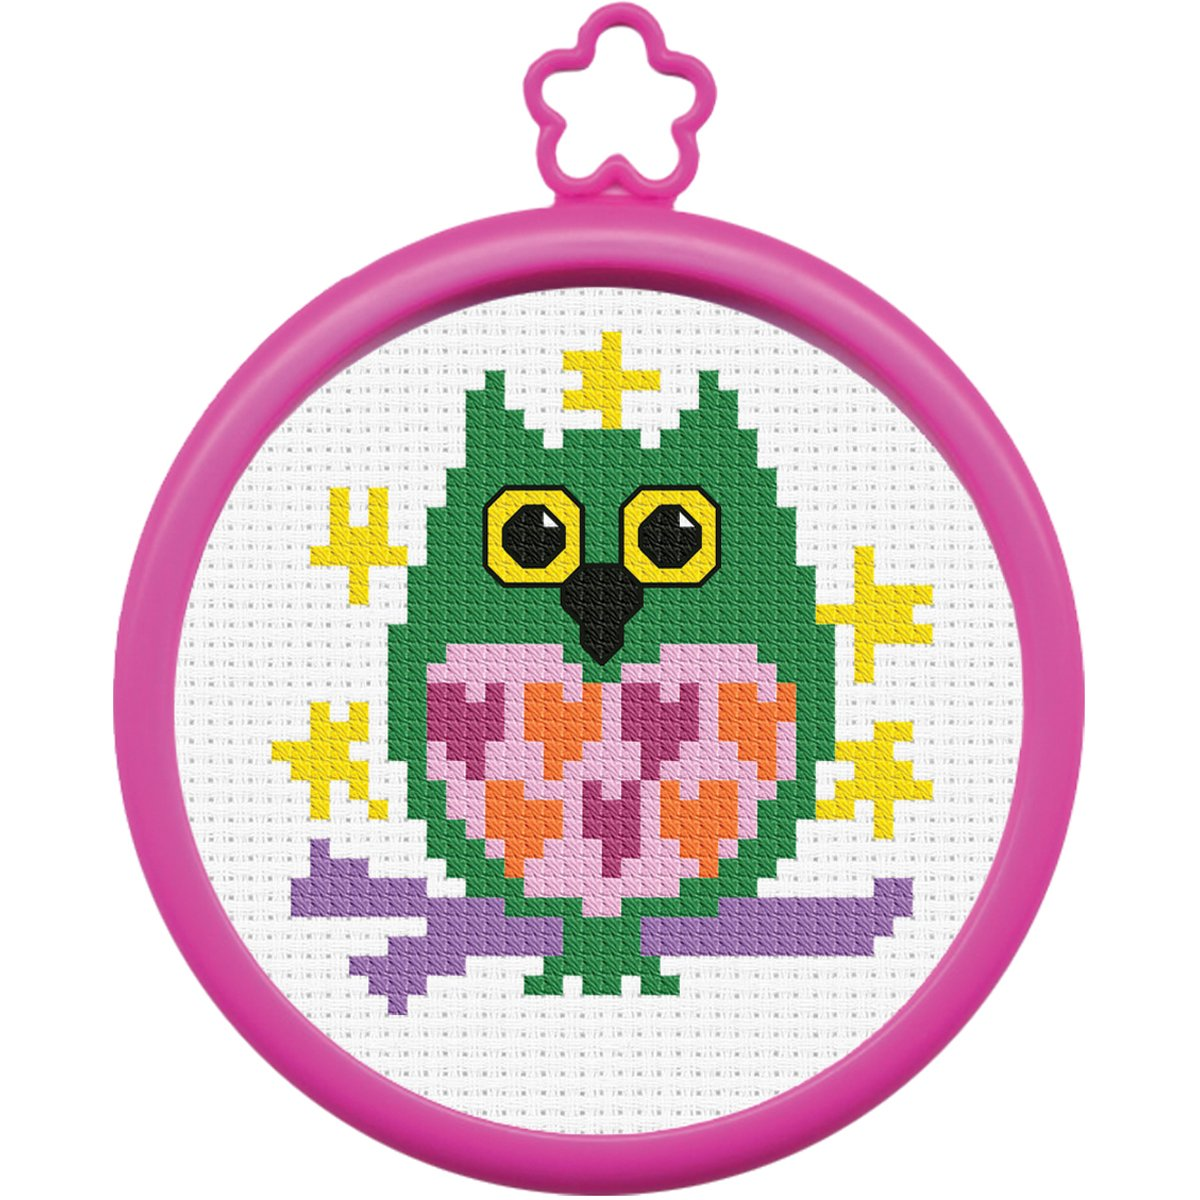 Bucilla My 1st Stitch Mini Counted Cross Stitch Kit, 45641 Owl